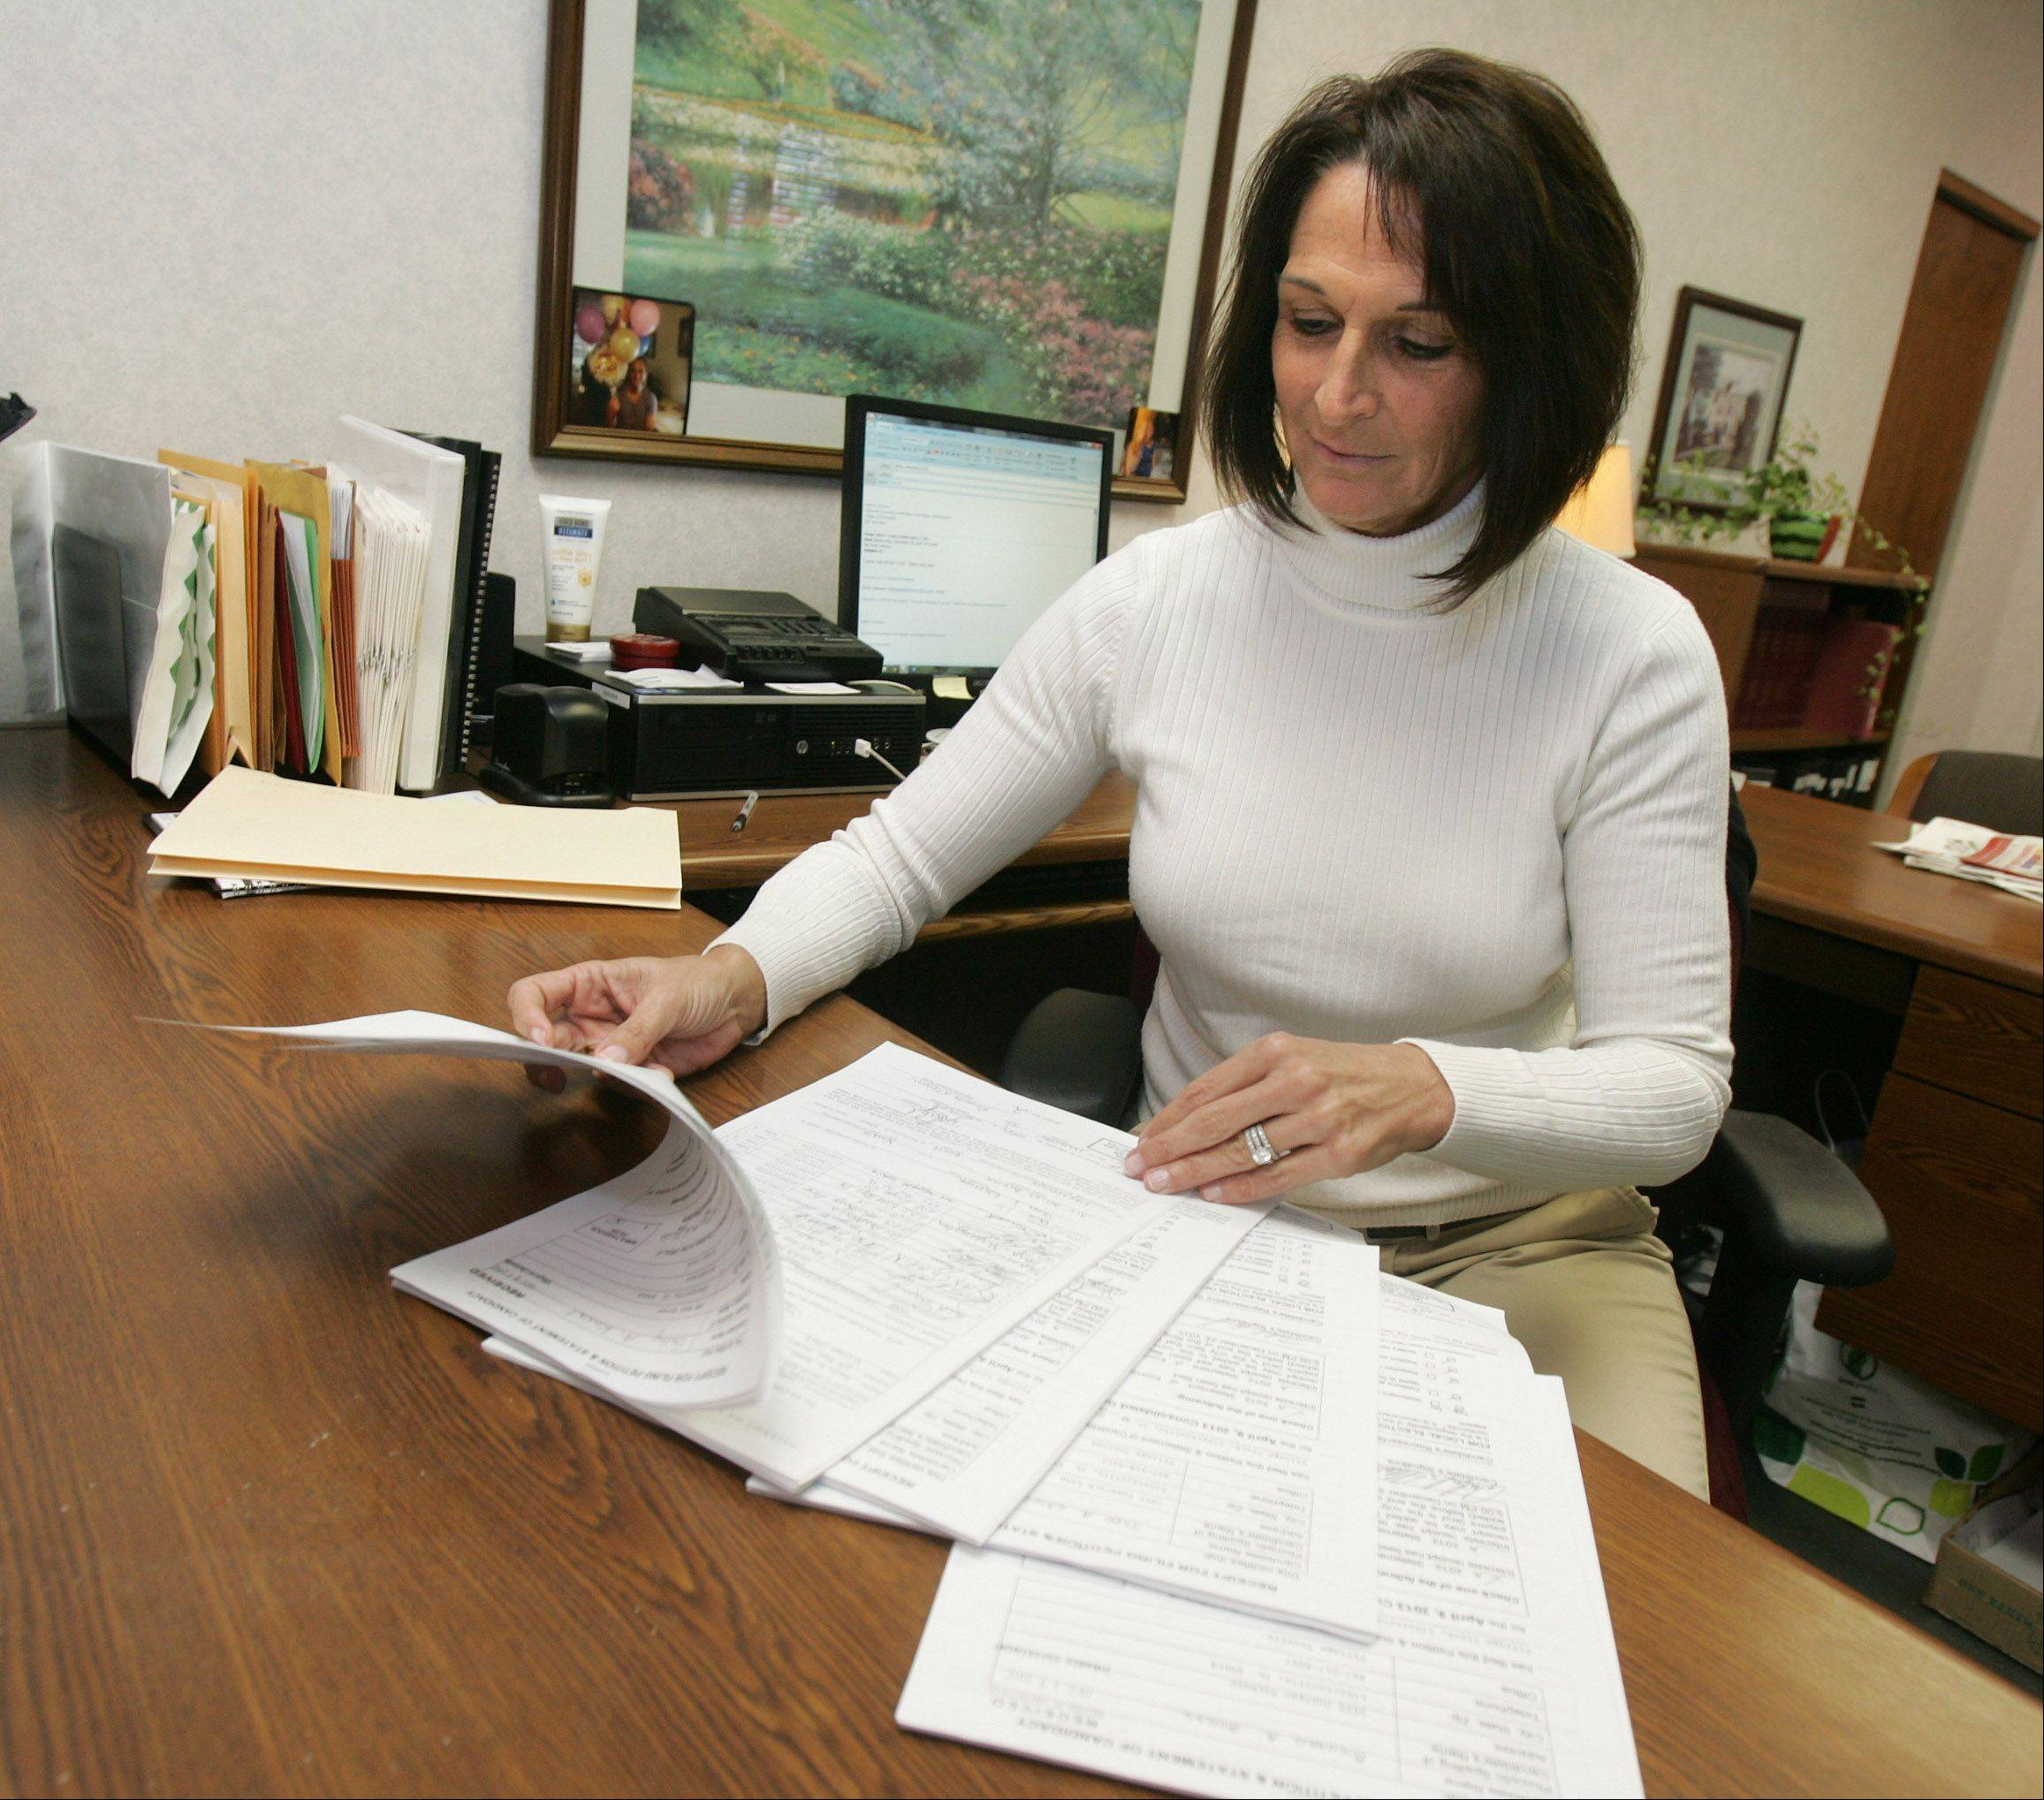 Executive Secretary Kelly Johnson looks through election petitions at Libertyville Village Hall Wednesday.